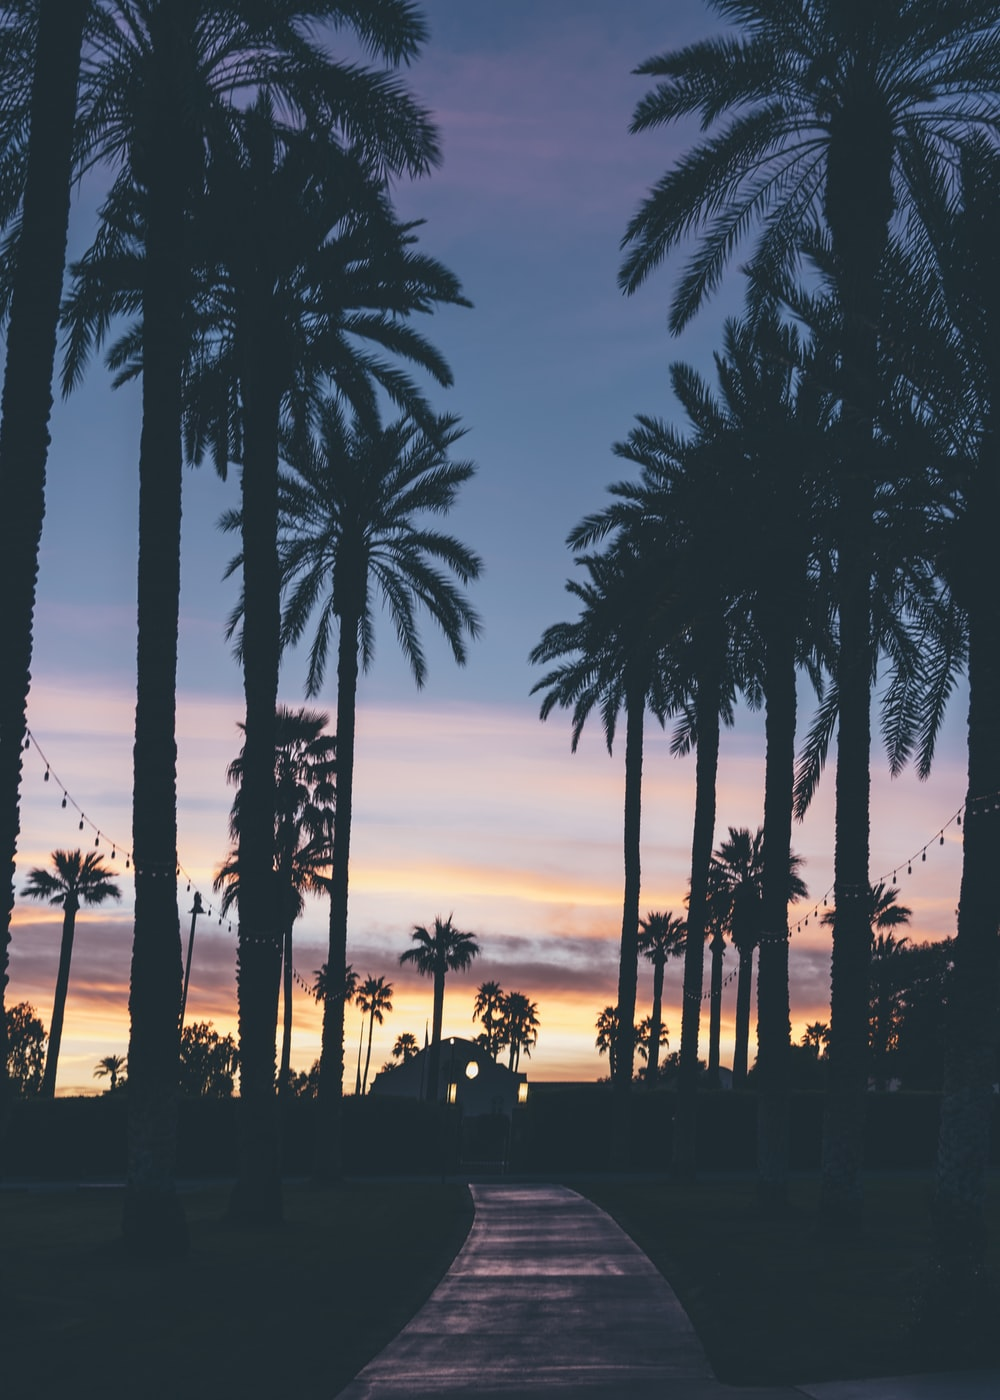 Palm Tree Wallpapers: Free HD Download